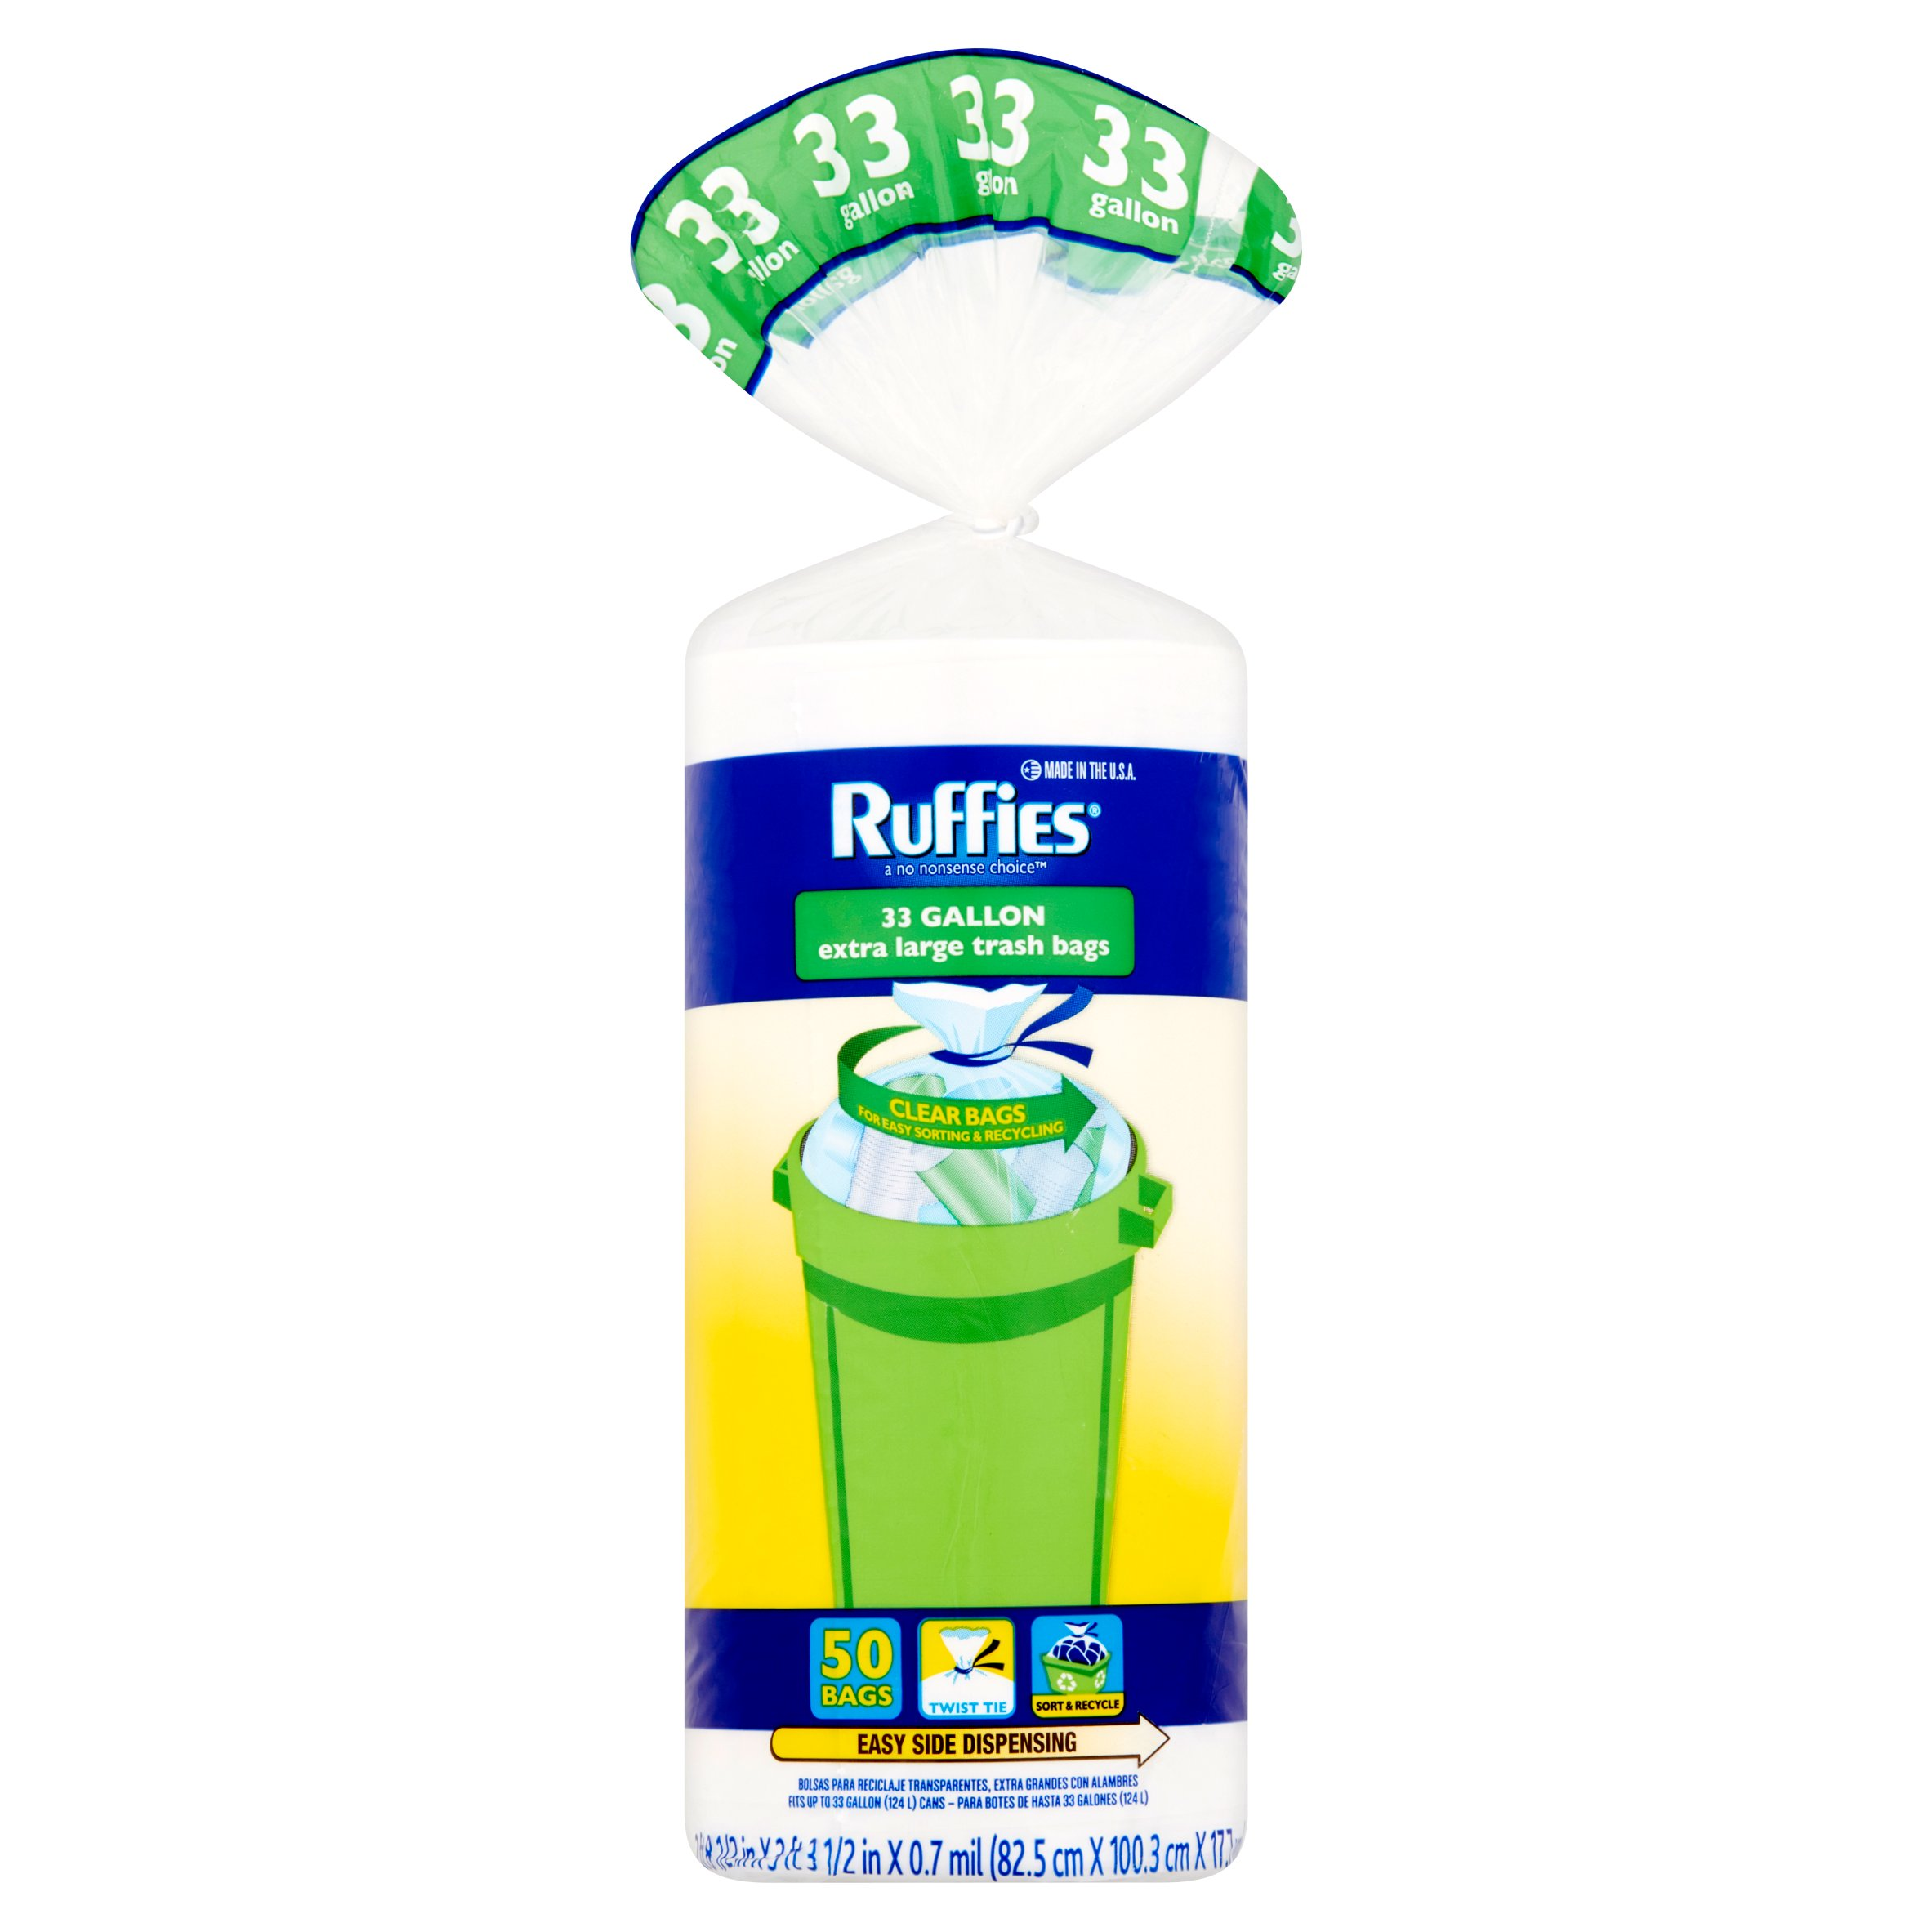 Ruffies Extra Large Trash Bags, Clear, 33 Gallon, 50 ct